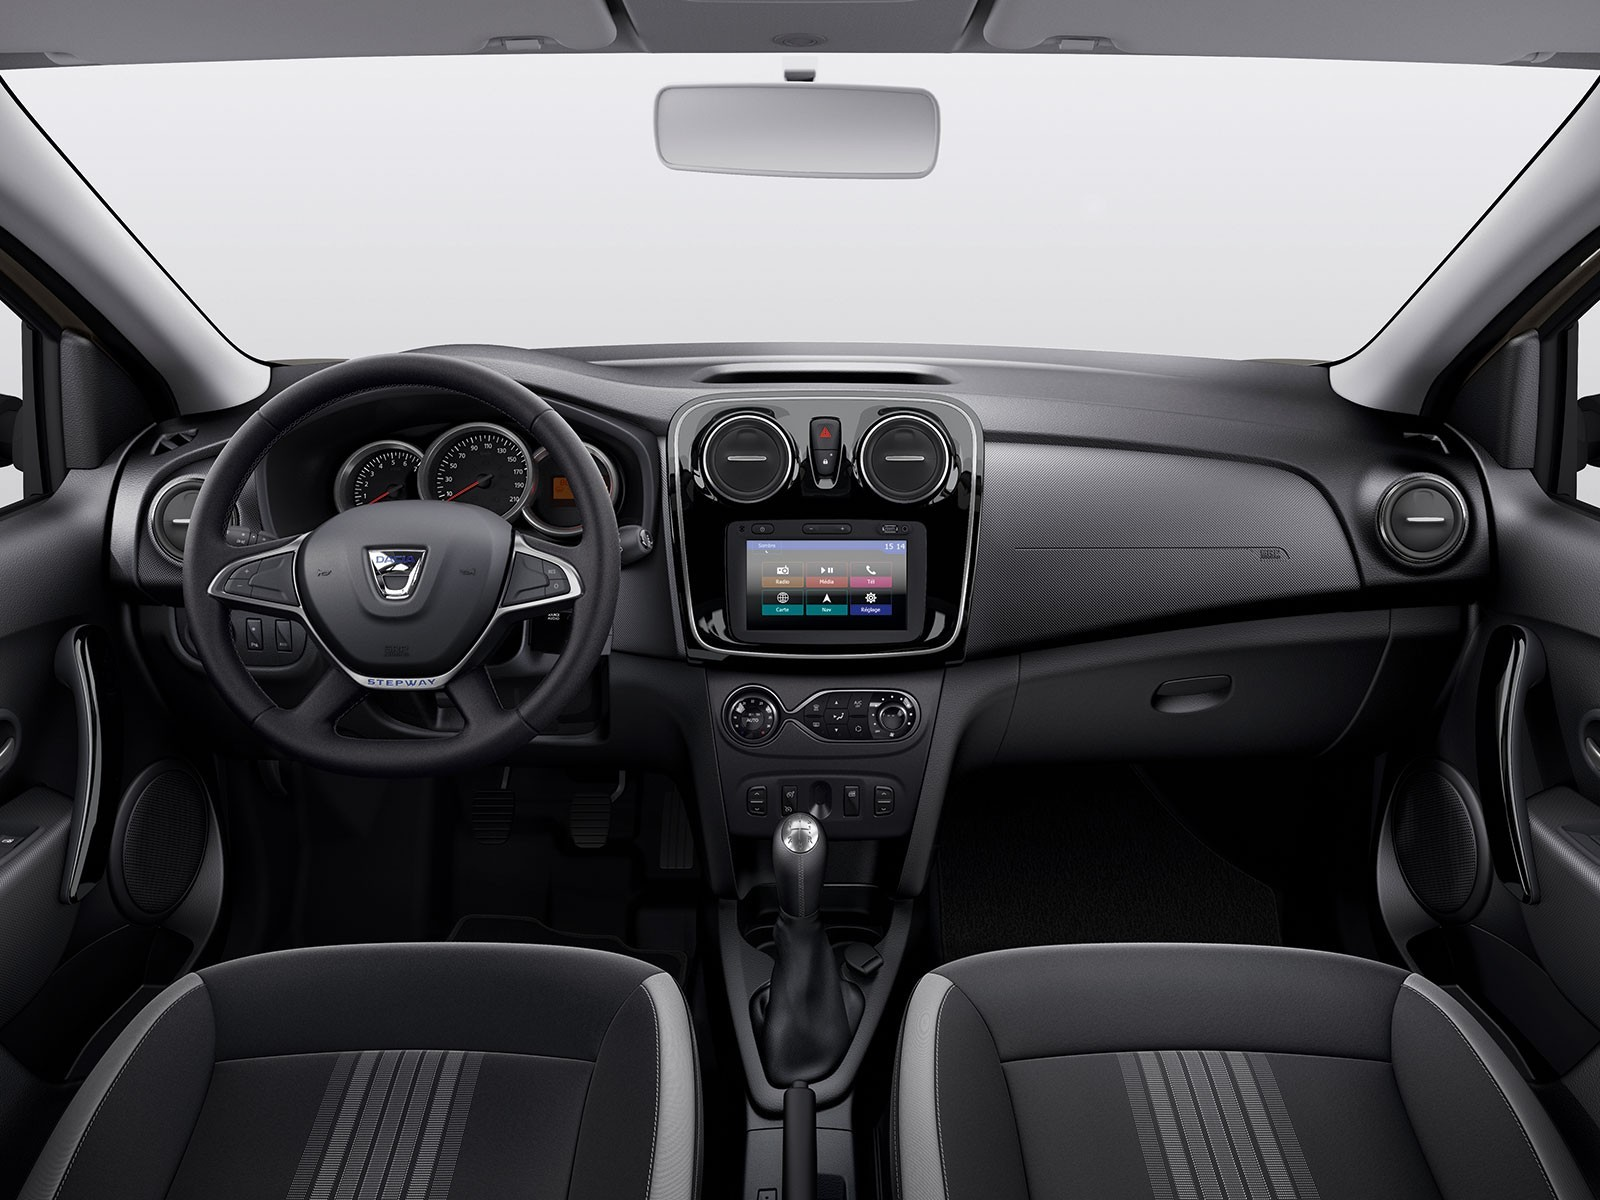 Sonderedition des dacia sandero stepway 002